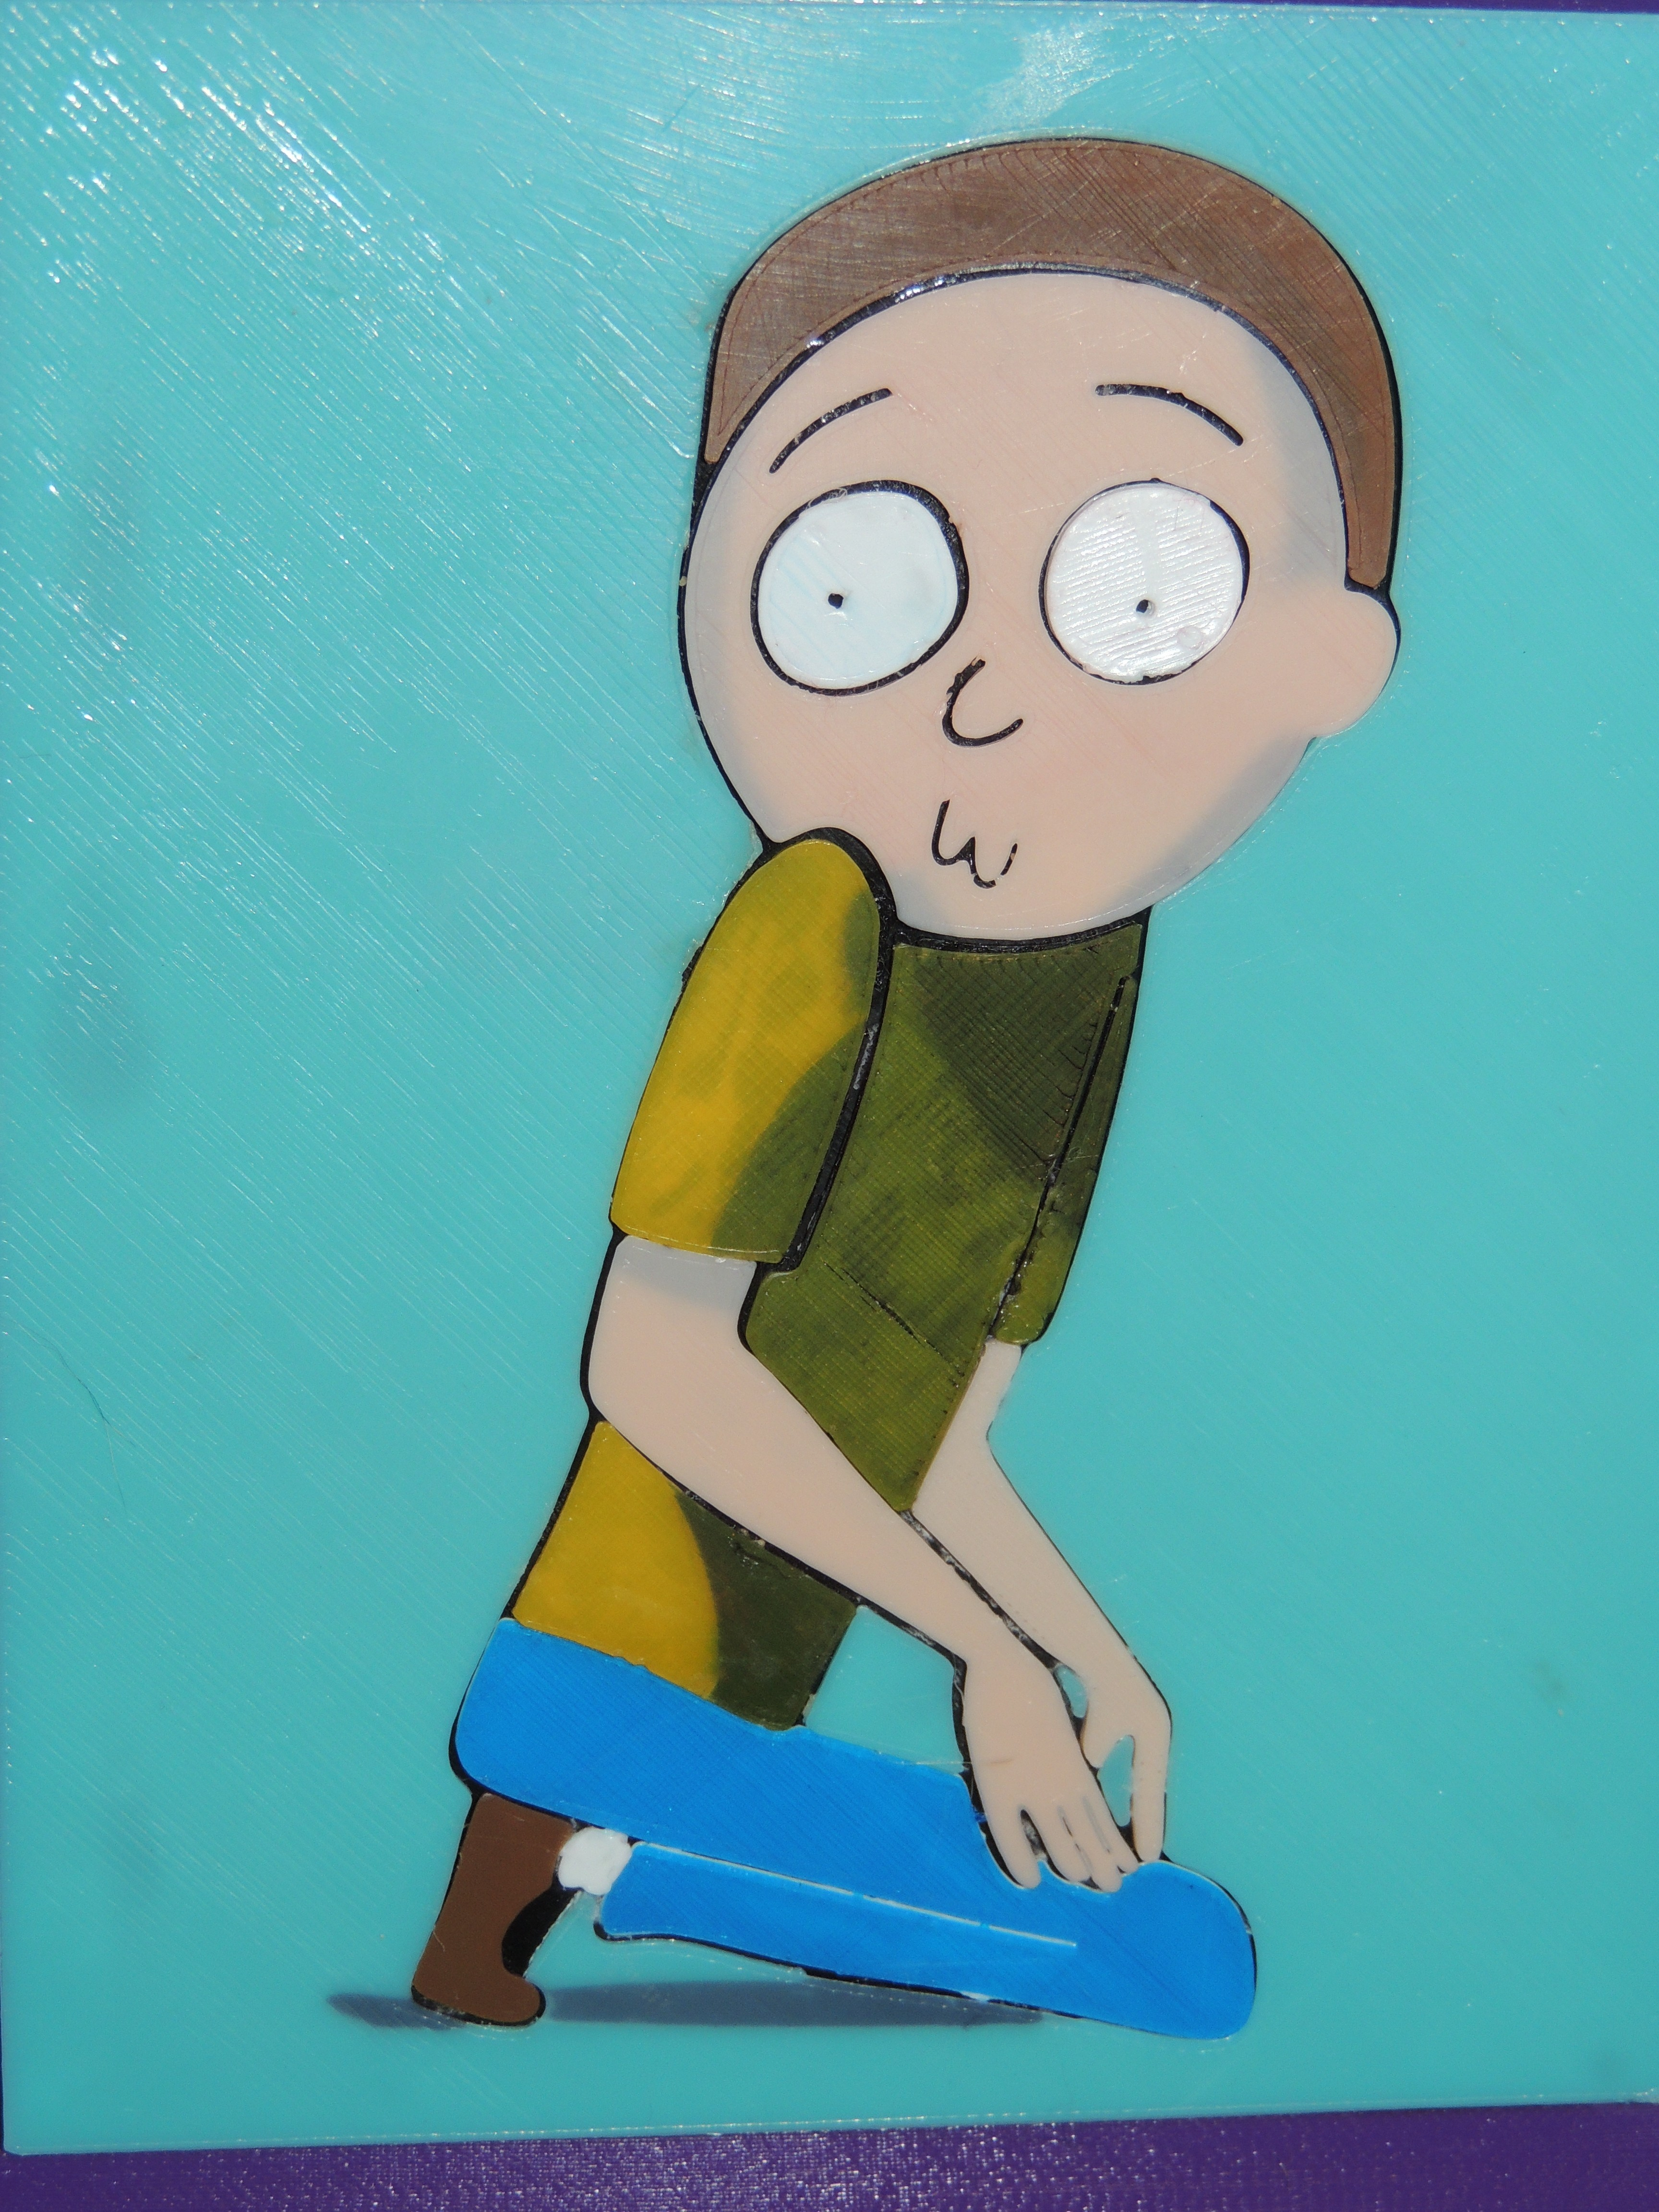 DSCN2451.JPG Download free STL file The Creepy Morty Painting - Rick and Morty • 3D printable object, JayOmega